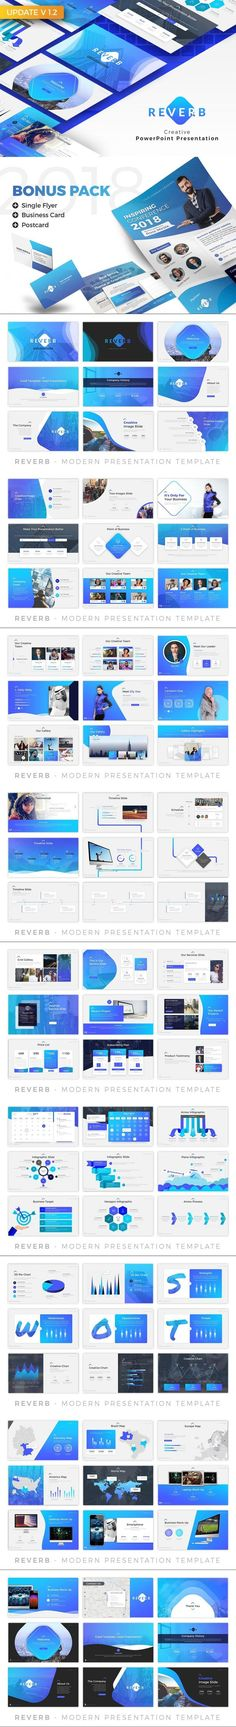 Reverb - Business Presentation #minimalistic #welcome #chart #theme #typography #design #infographic #maps #trendy #presentation #jet #company #PresentationTemplate #vehicle #slides #presentation #drag #retina #lookbook Business Presentation Templates, Presentation Design, Social Media Impact, Office Themes, Postcard Template, Charts And Graphs, Icon Pack, Project Management, Light In The Dark